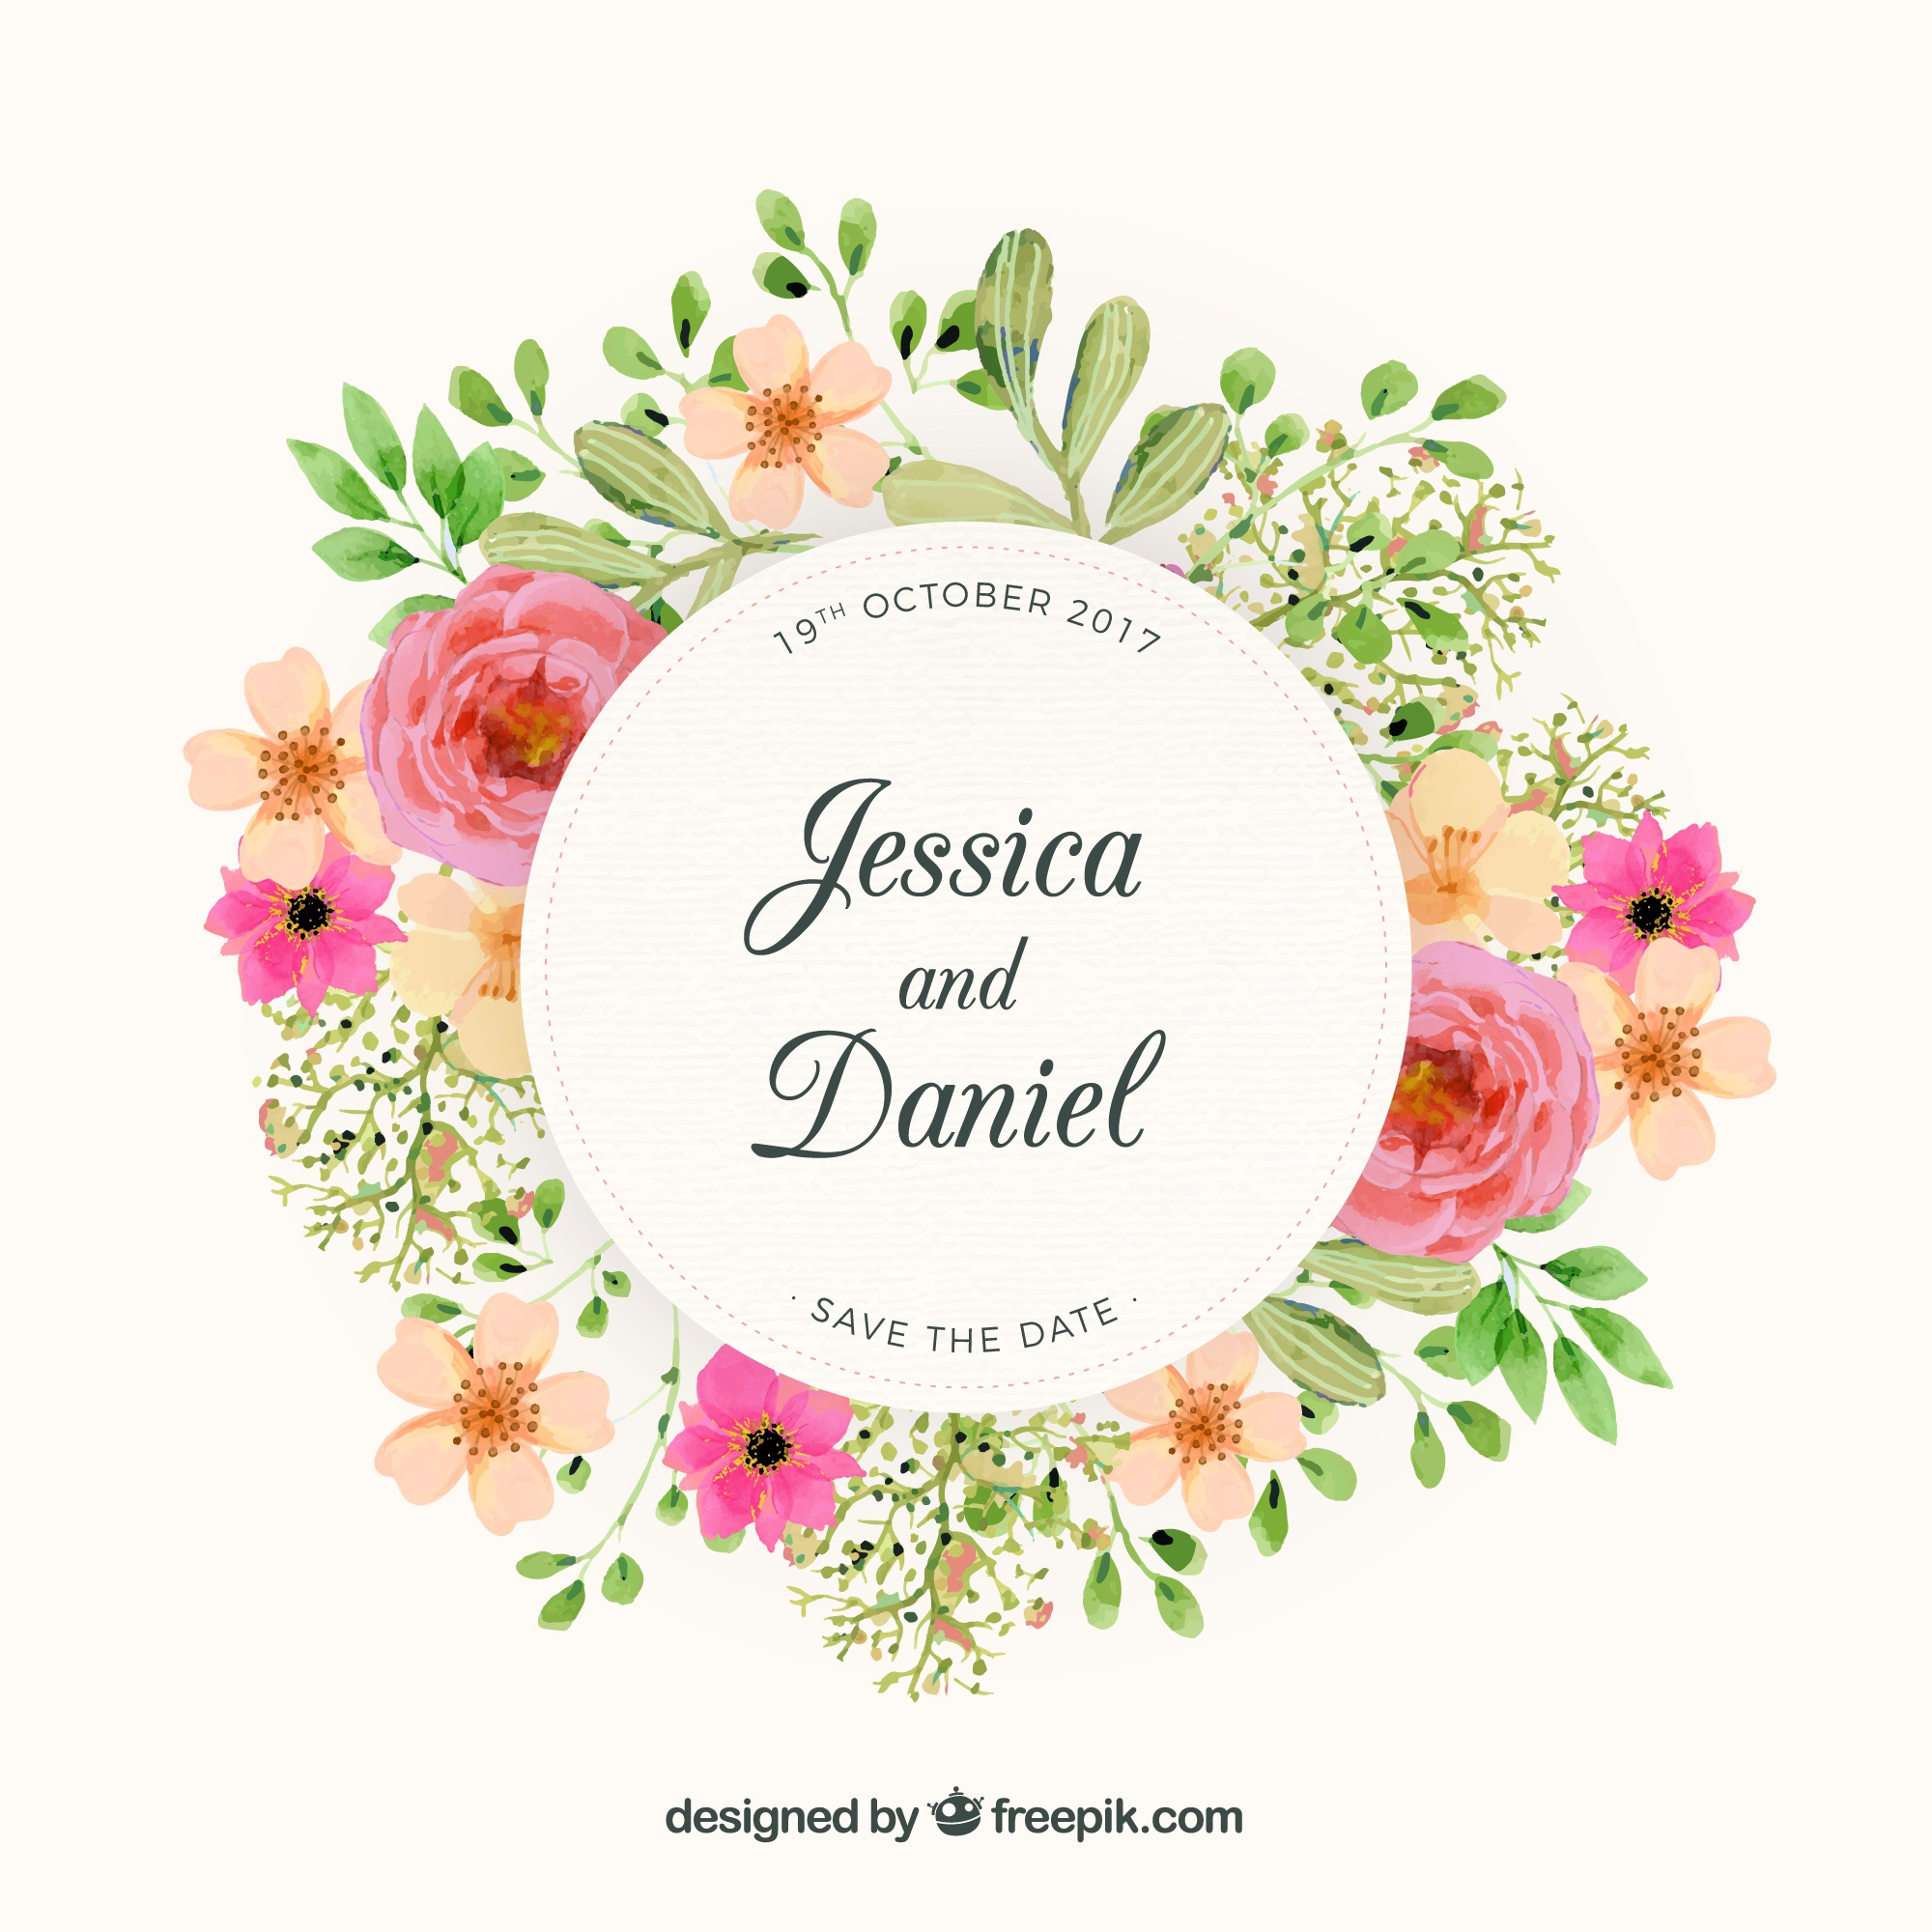 Floral wreath wedding design